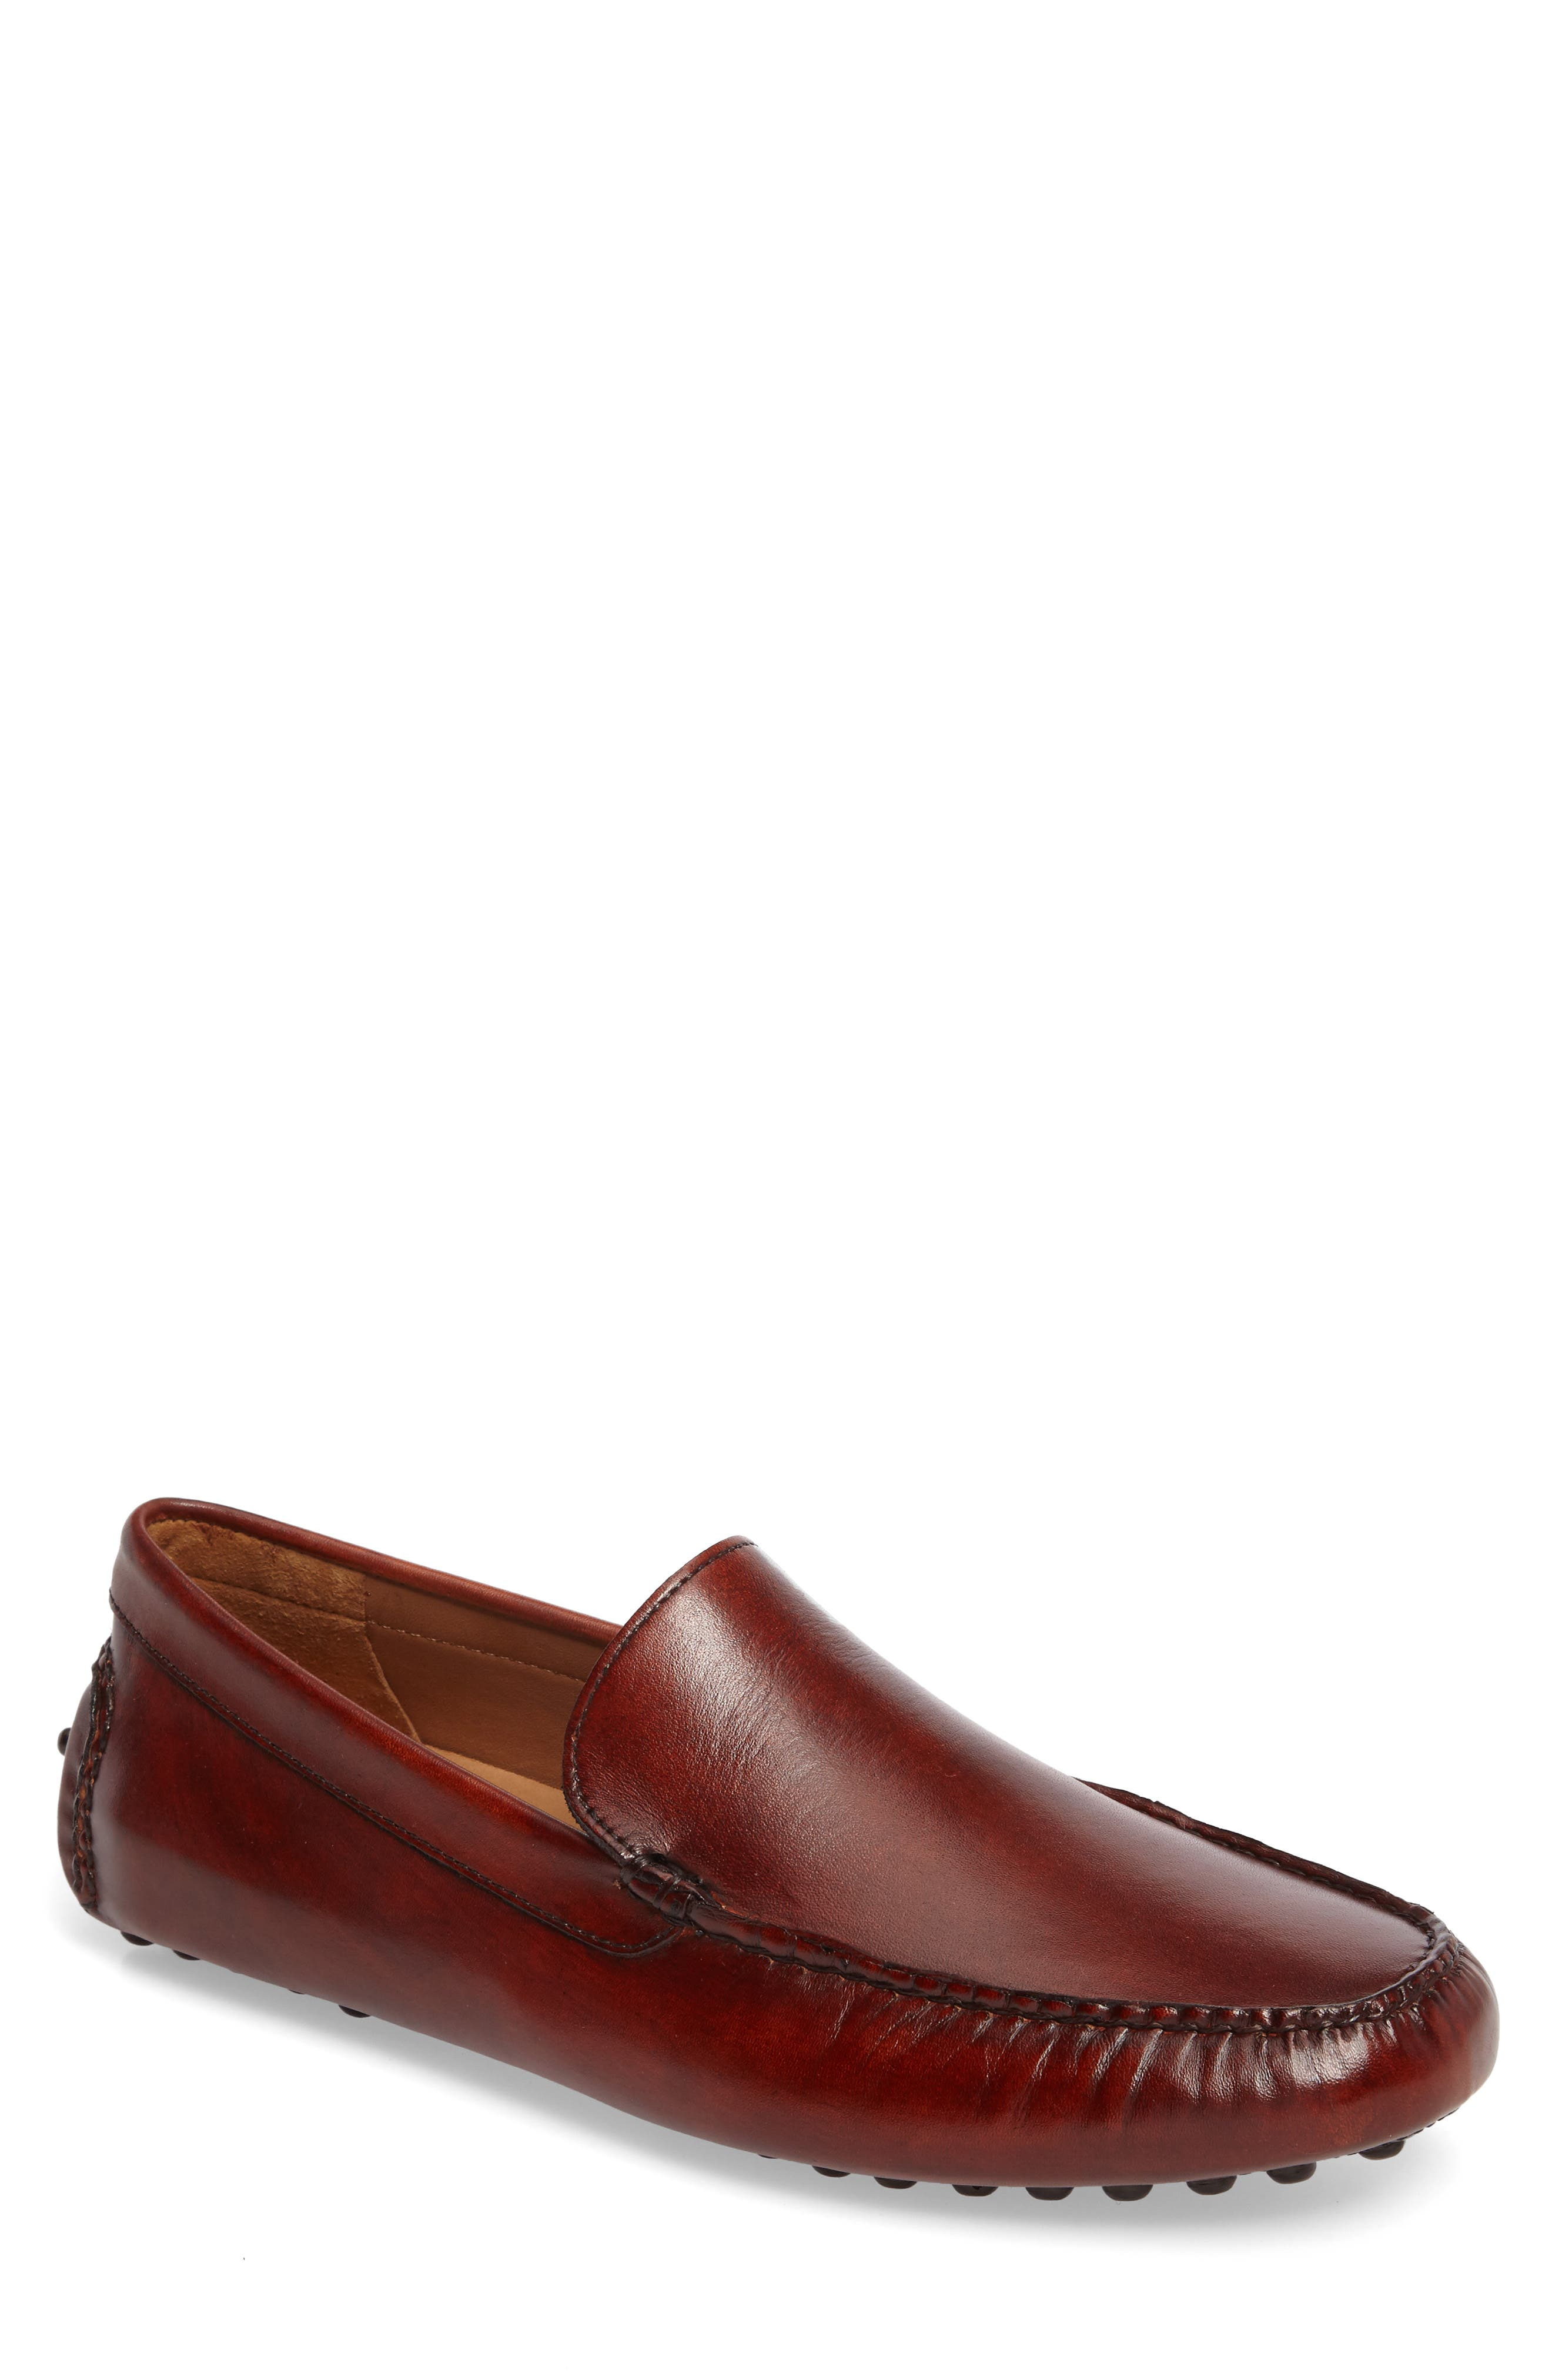 John W. Nordstrom® Cane Driving Shoe (Men)